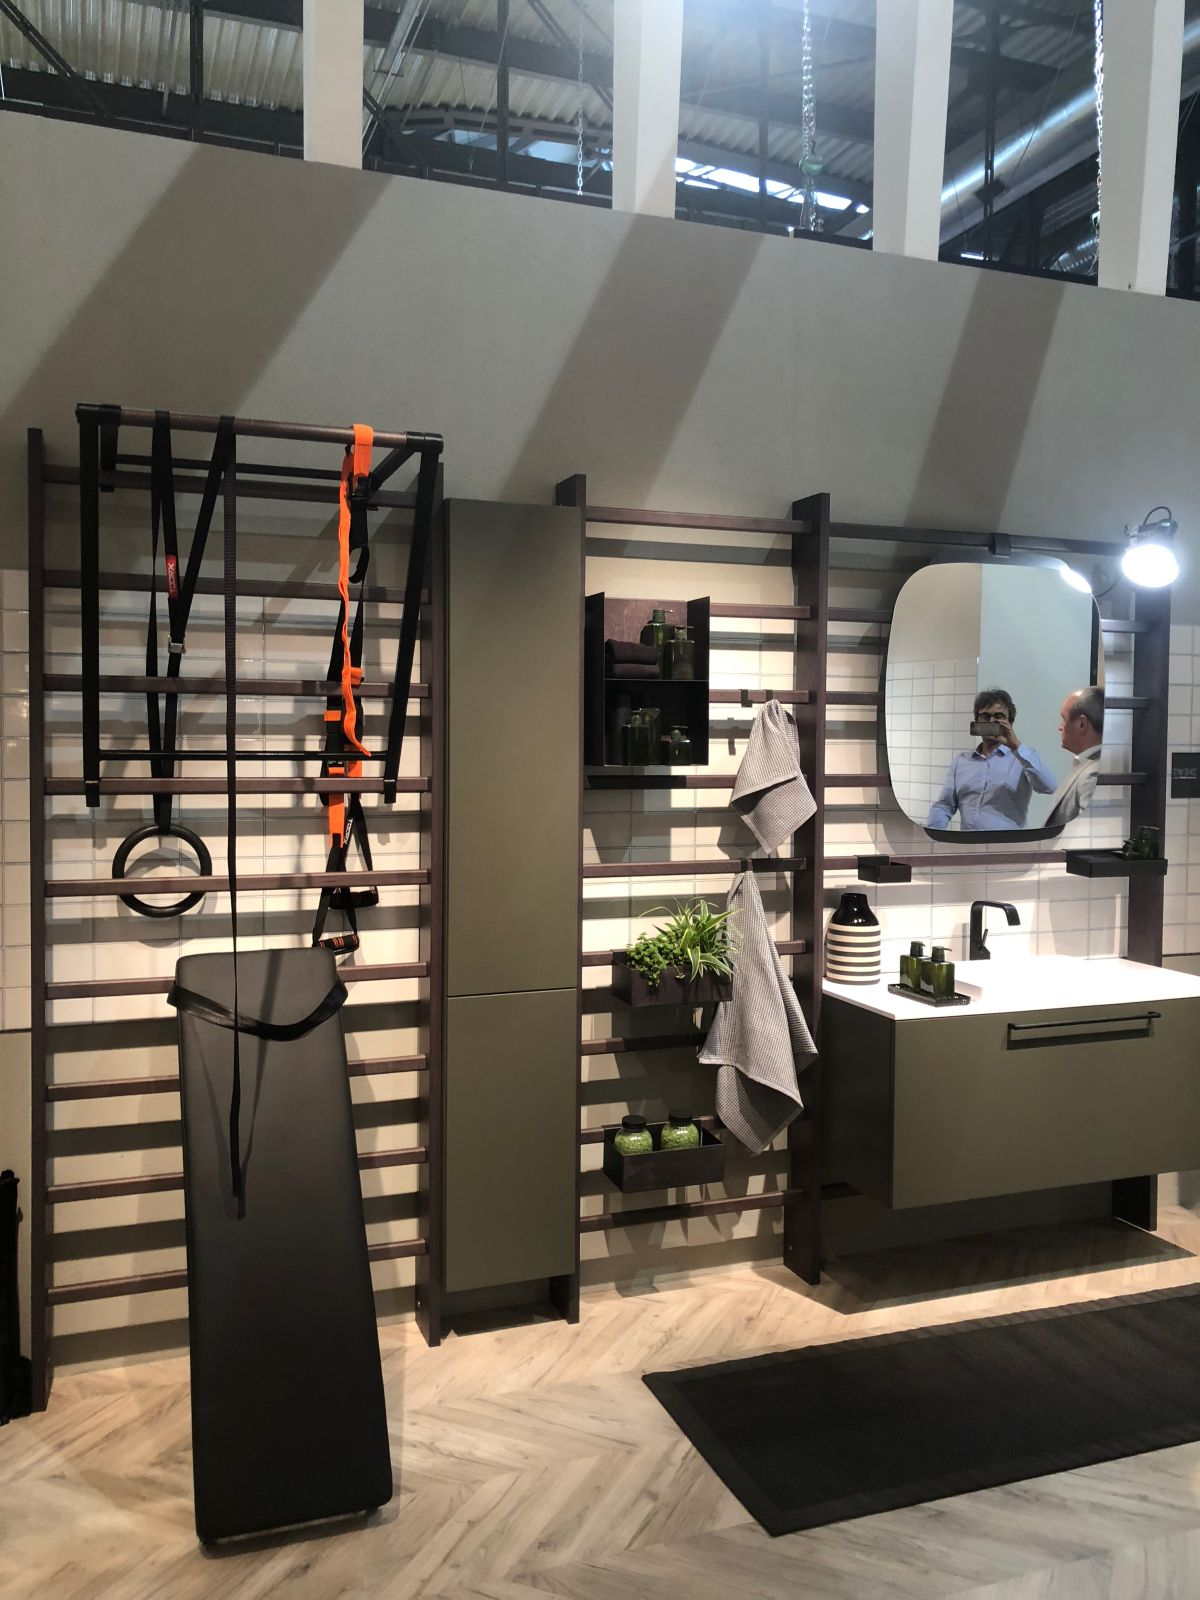 A new gym bathroom from scavolini inspires people to become more active